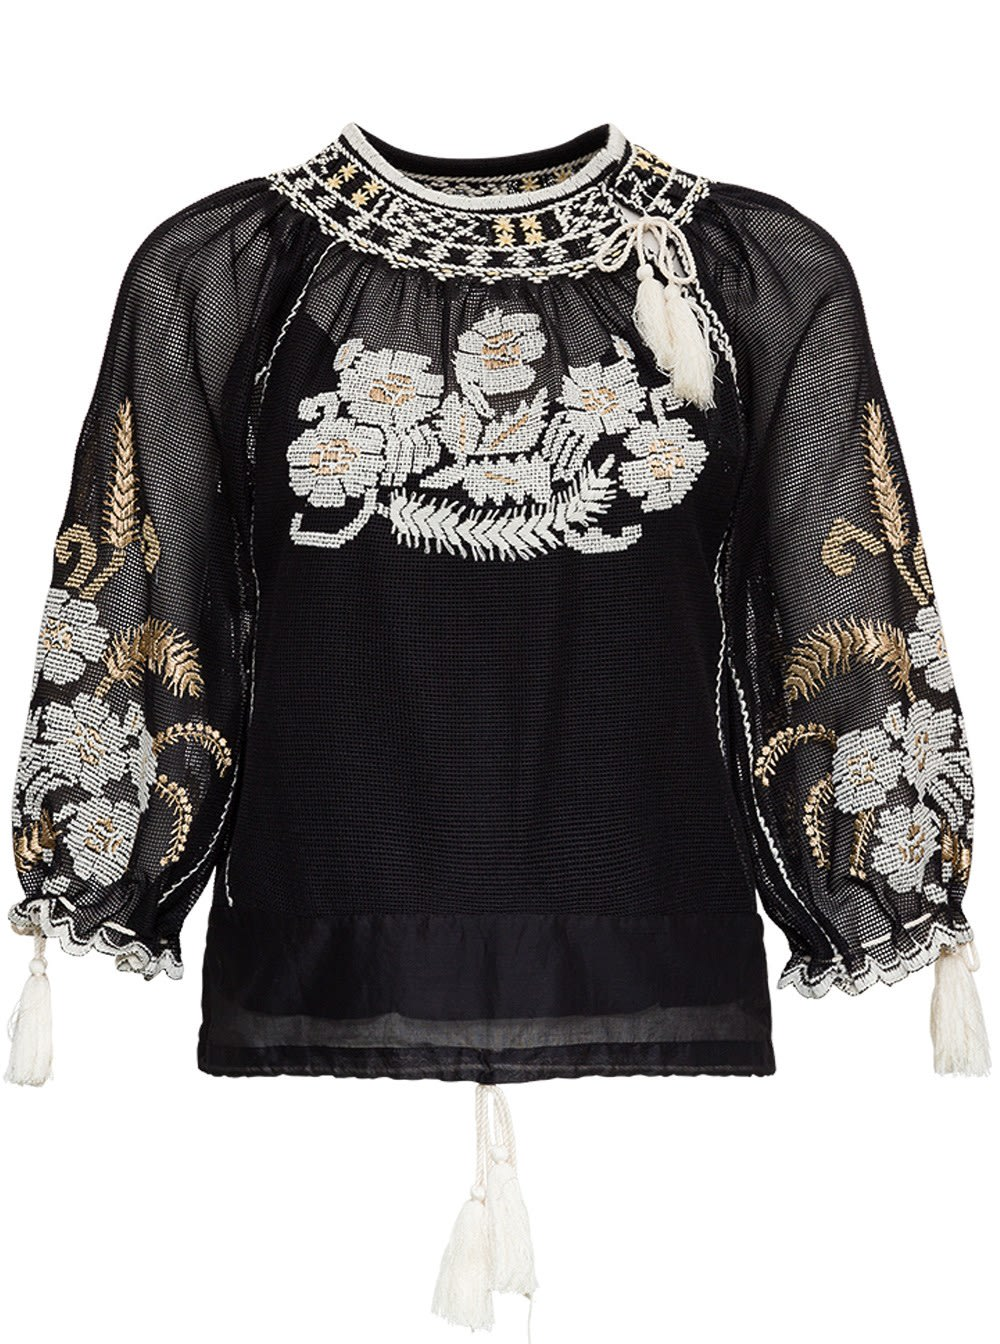 Red Valentino Mesh Shirt With Floral Embroidery In Black